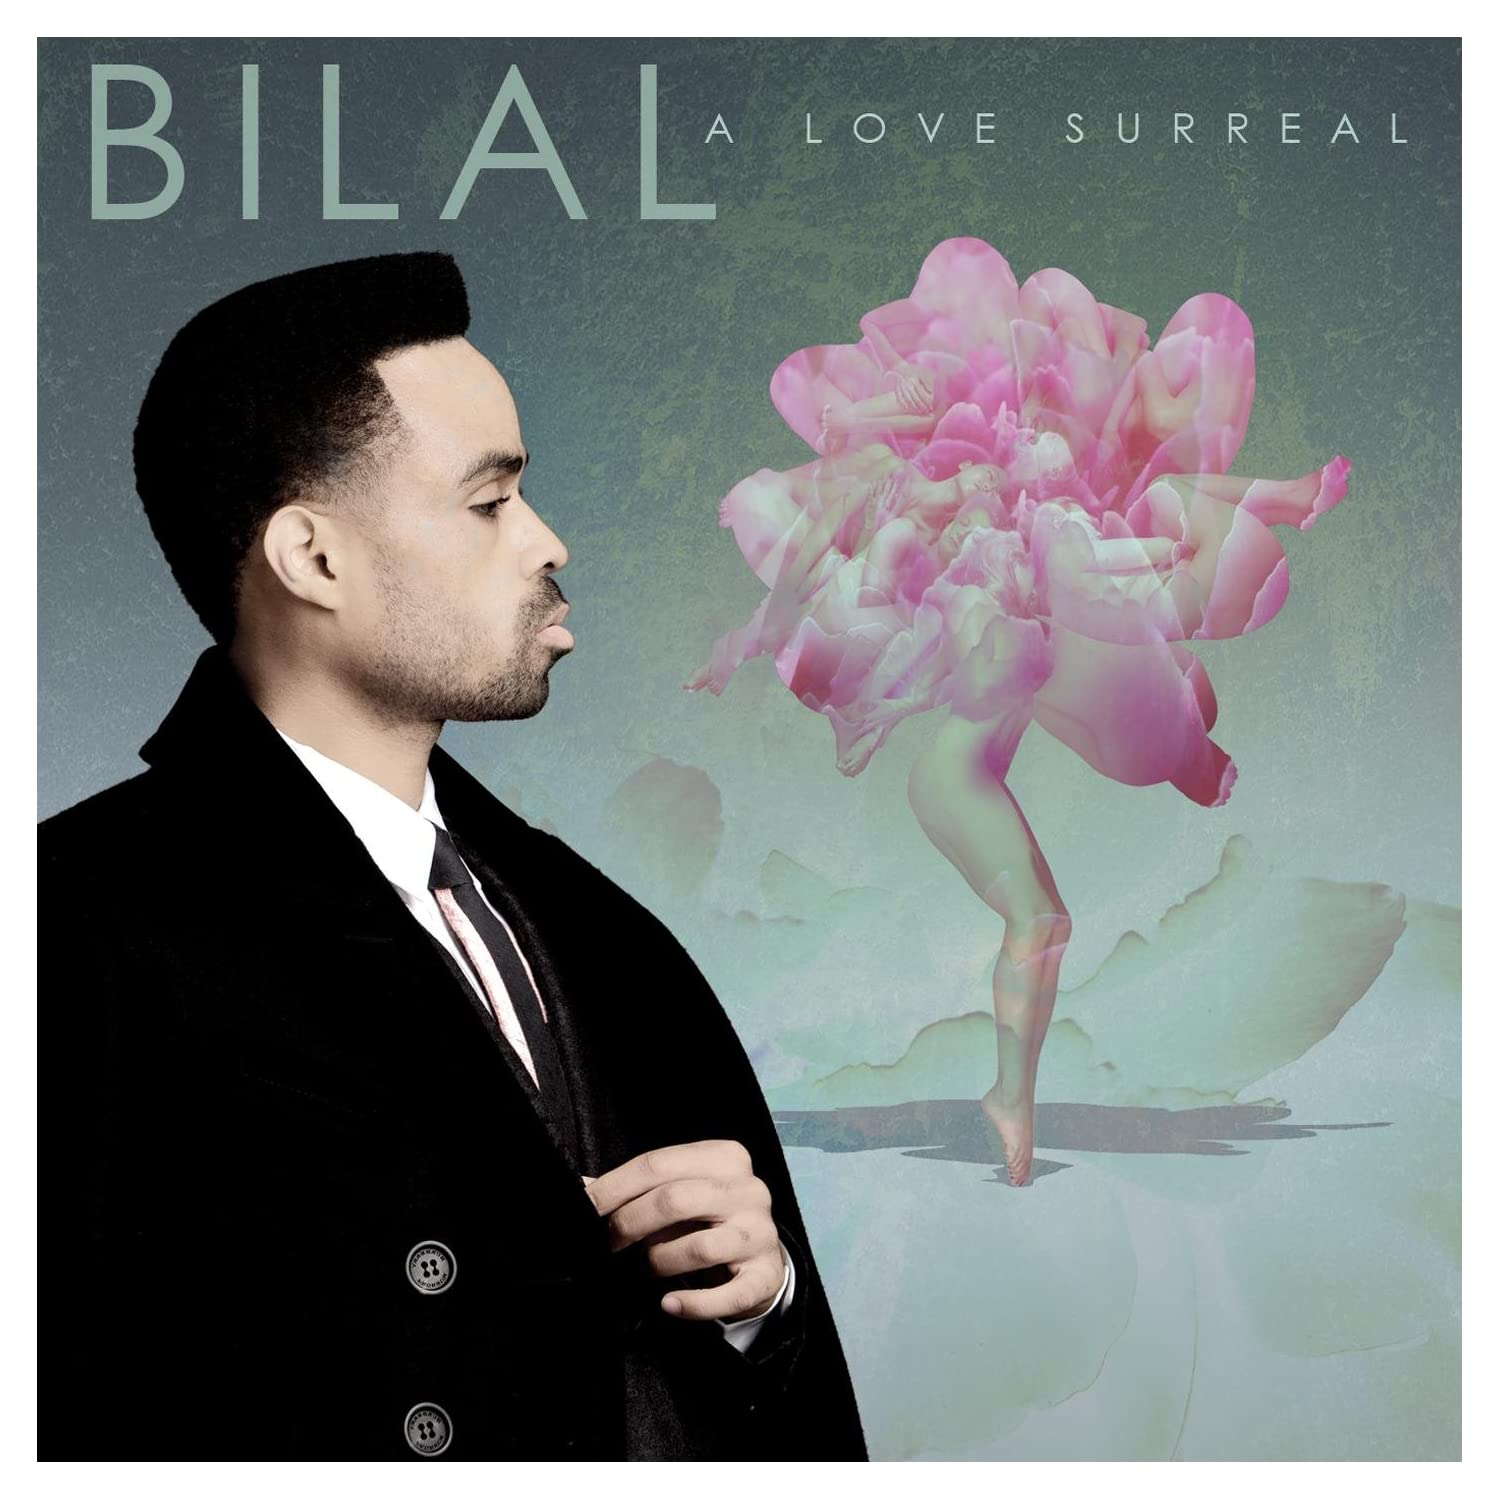 BILAL A LOVE SURREAL